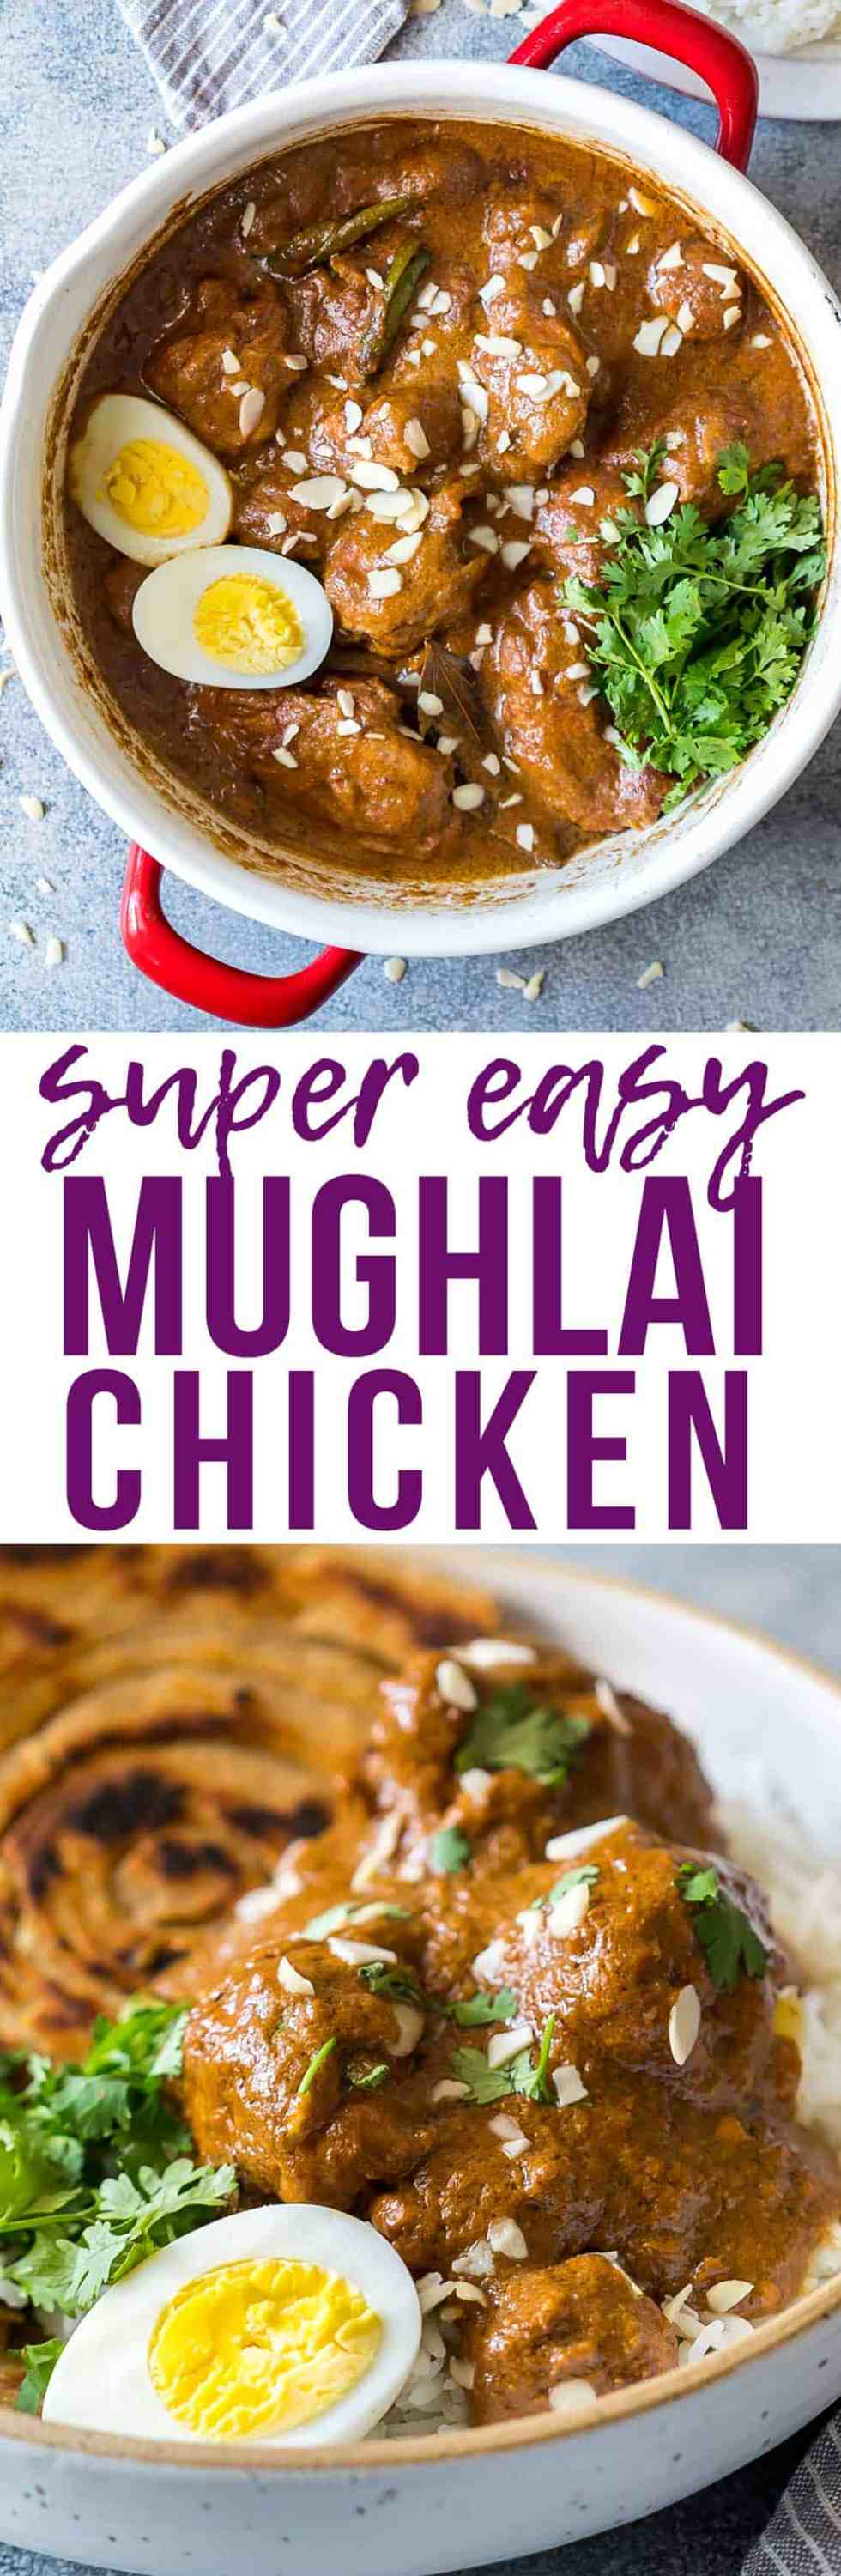 Mughlai Chicken is a restaurant style, north Indian recipe with a creamy, dark brown onion gravy that will have you licking the plate! Serve it with parathas, biryani or jeera rice, and feel free to substitute paneer if you are vegetarian.